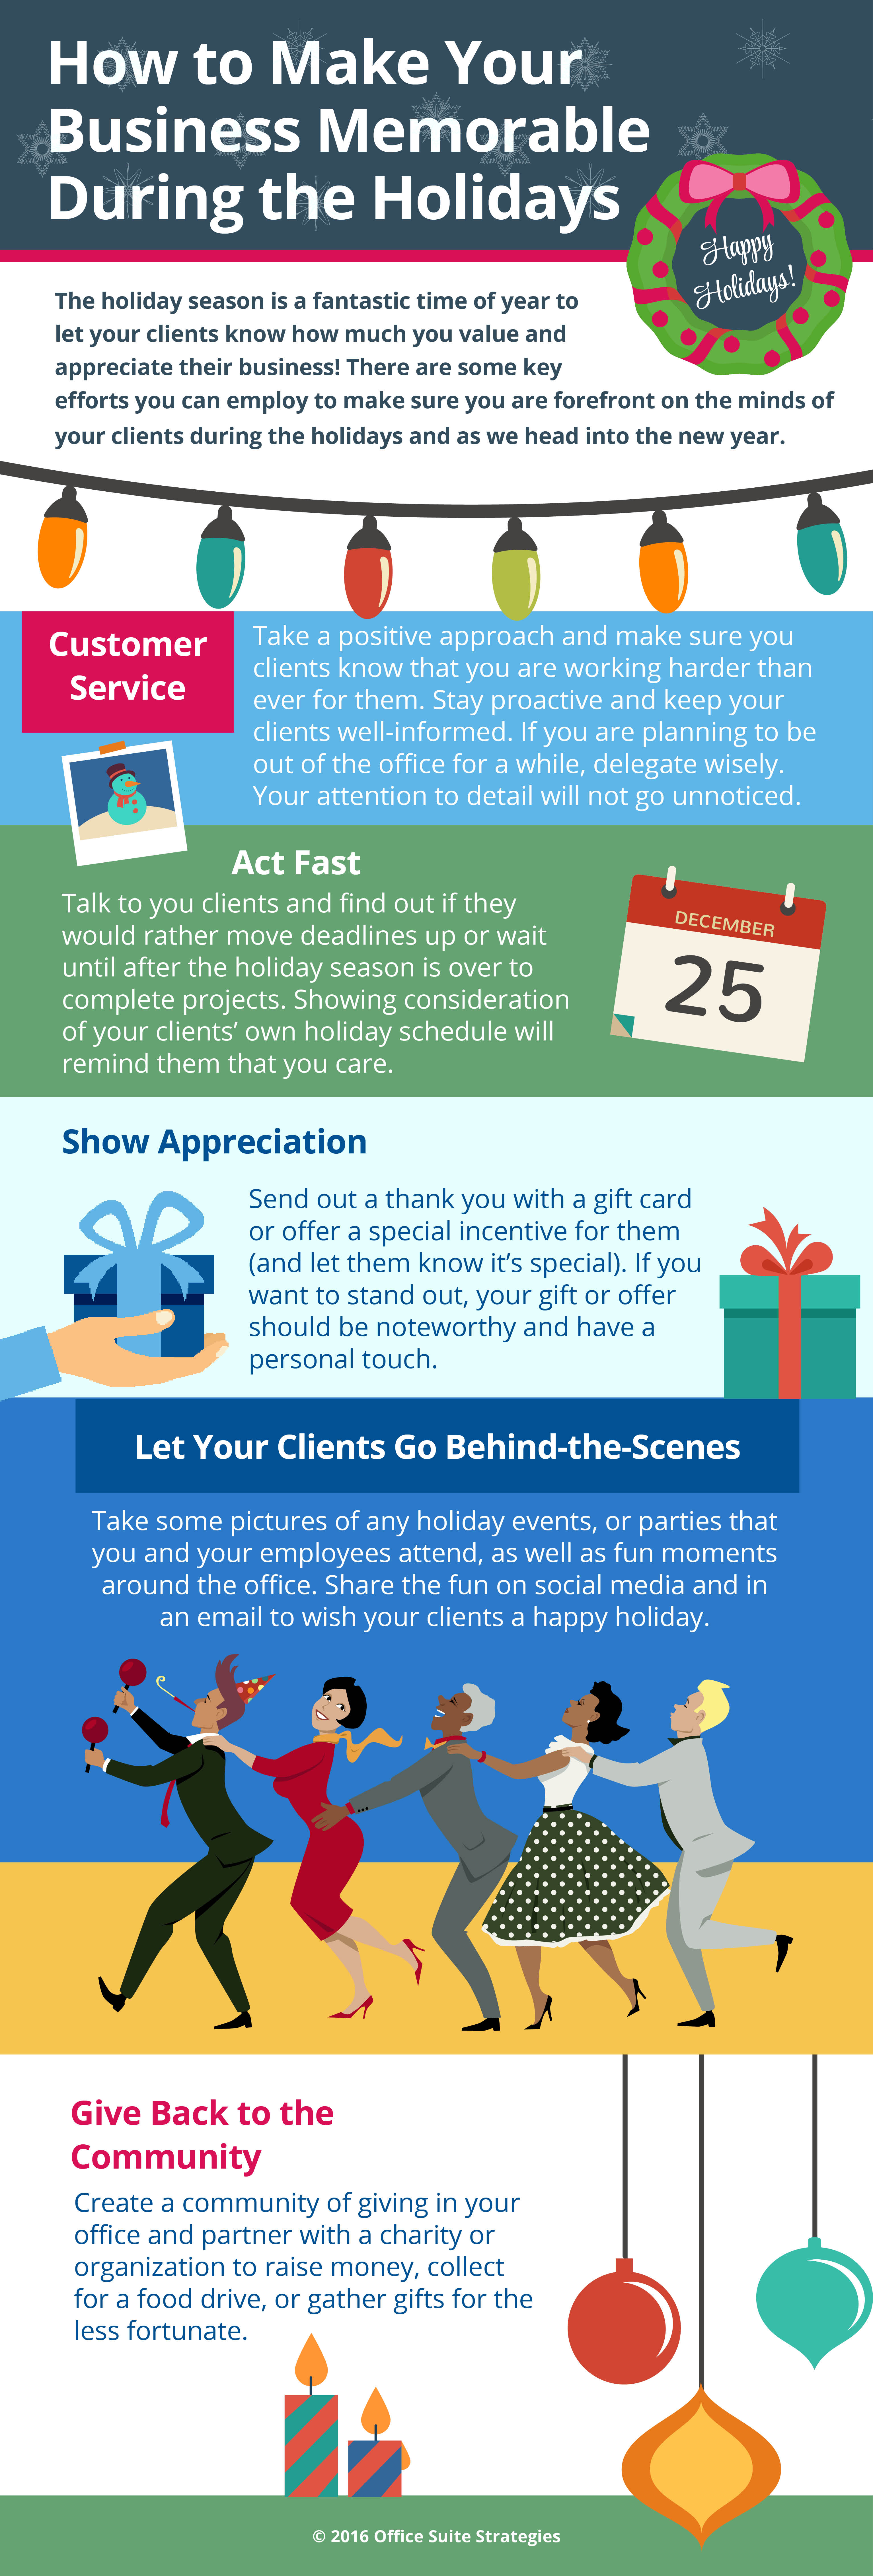 infographic-with-tips-from-article-on-how-your-business-can-stand-out-during-the-holidays